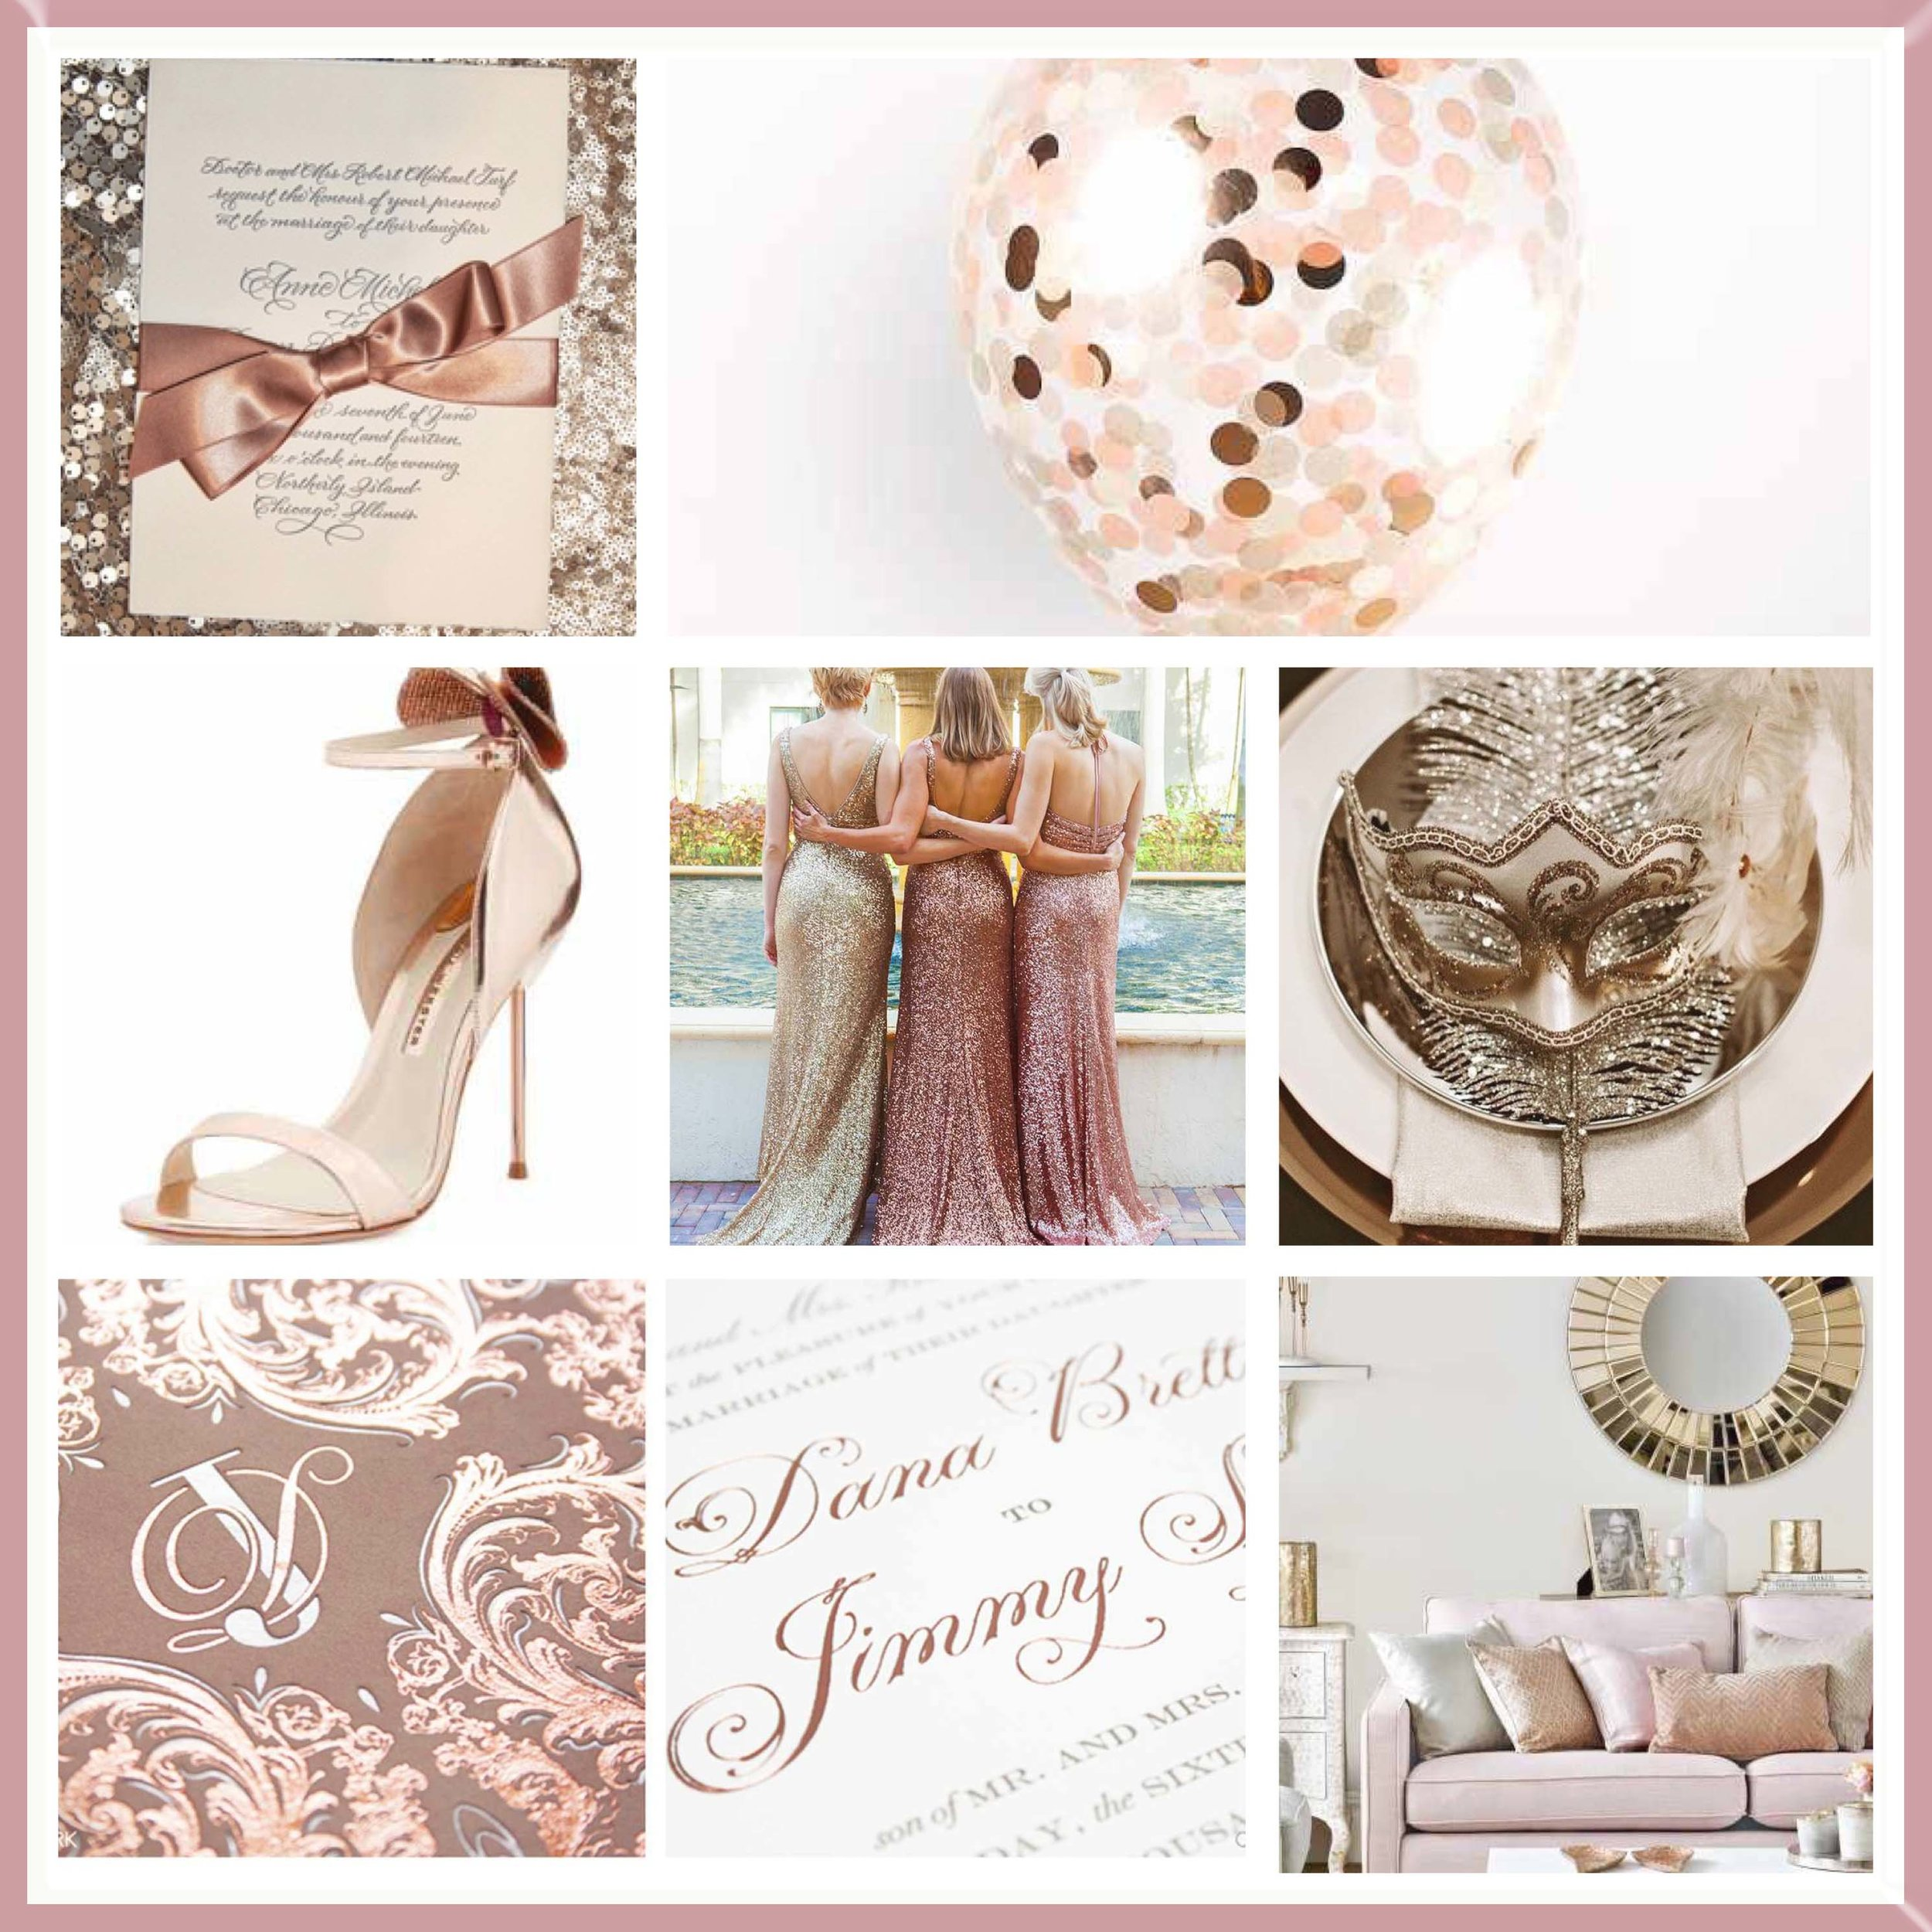 Bronze & Rose Gold wedding mood board designed by Luxe by Minihaha & co.